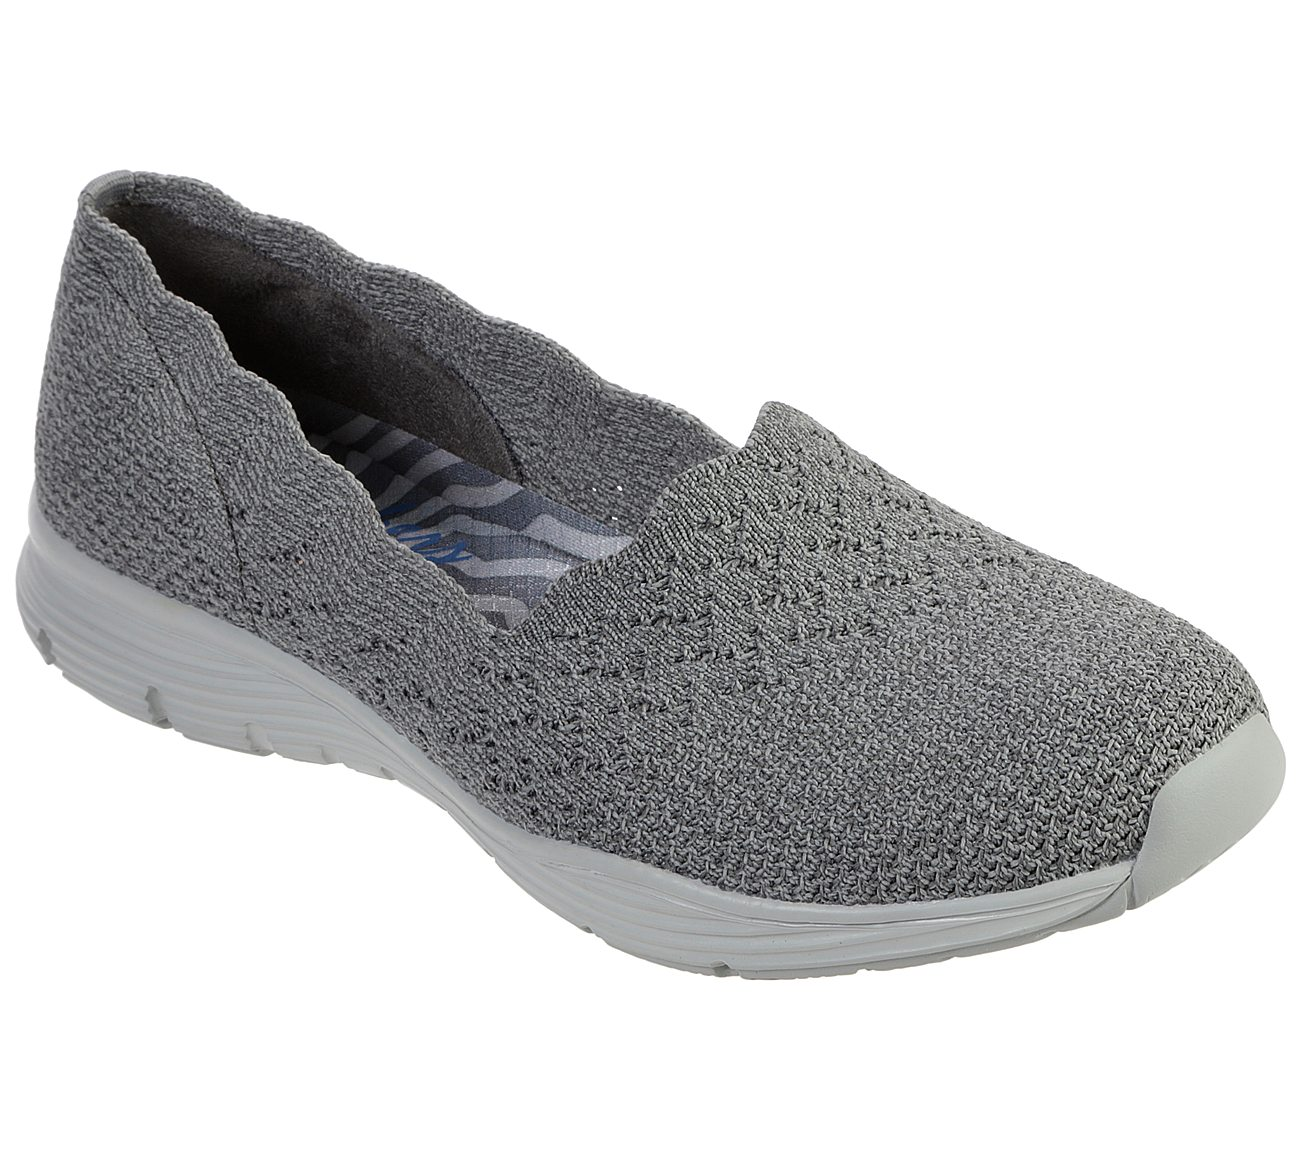 SKECHERS Seager - Stat Modern Comfort Shoes